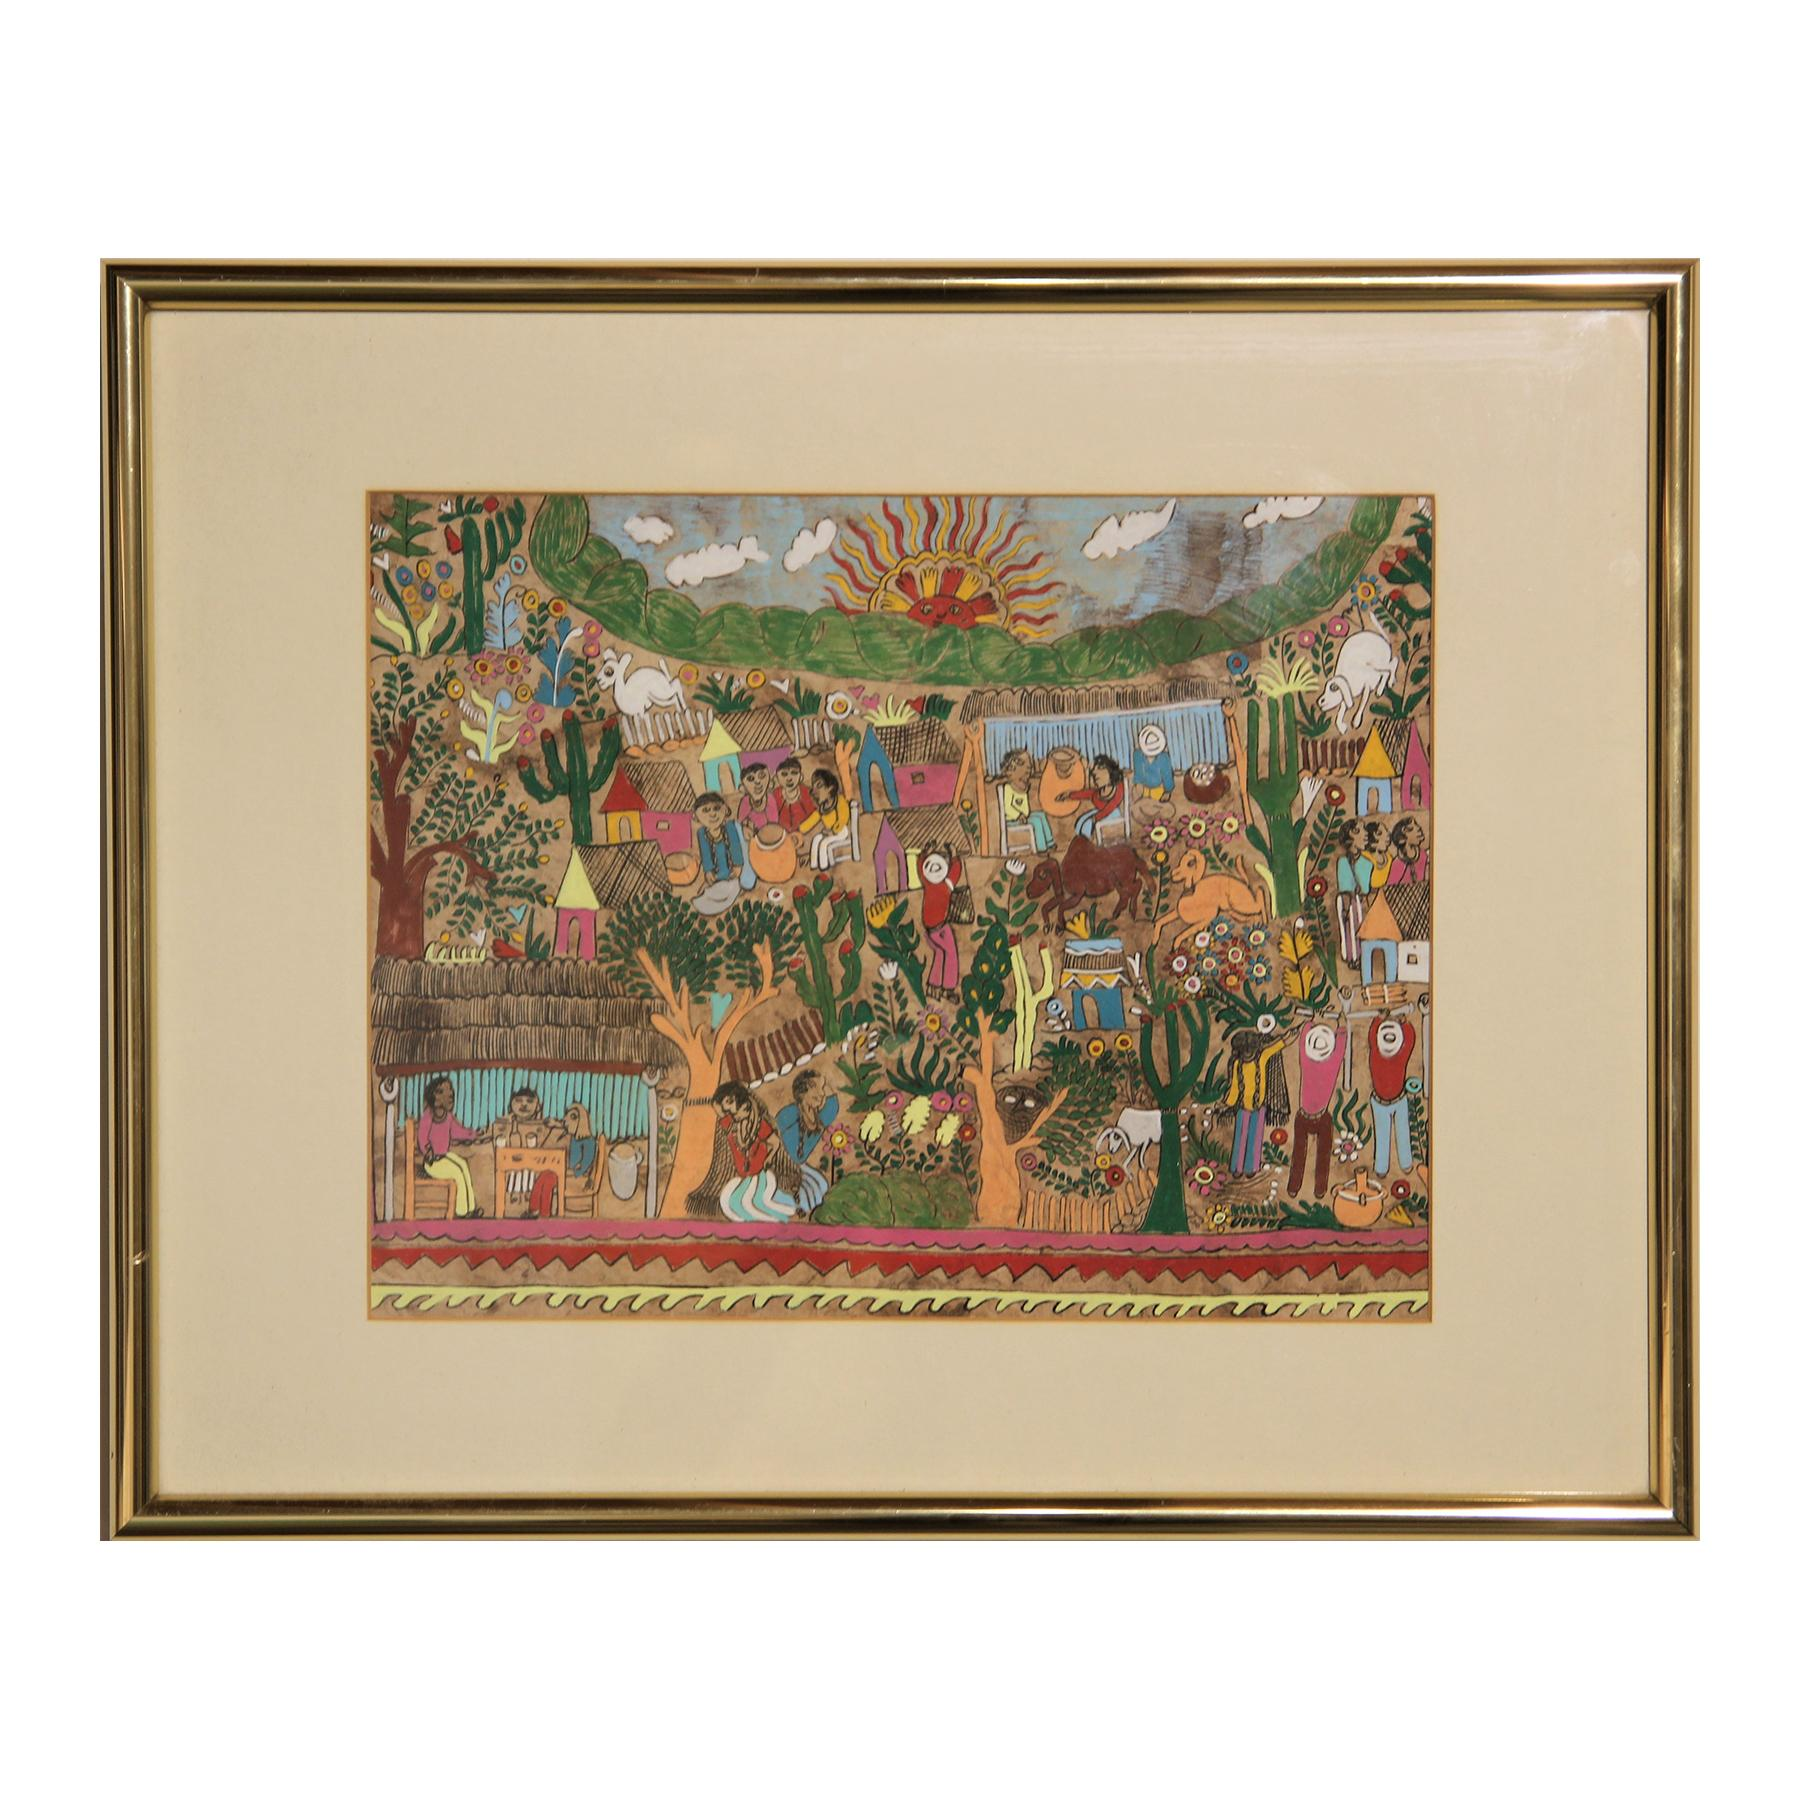 Colorful Green and Red Mexican Amate Folk Art Figurative Landscape Painting